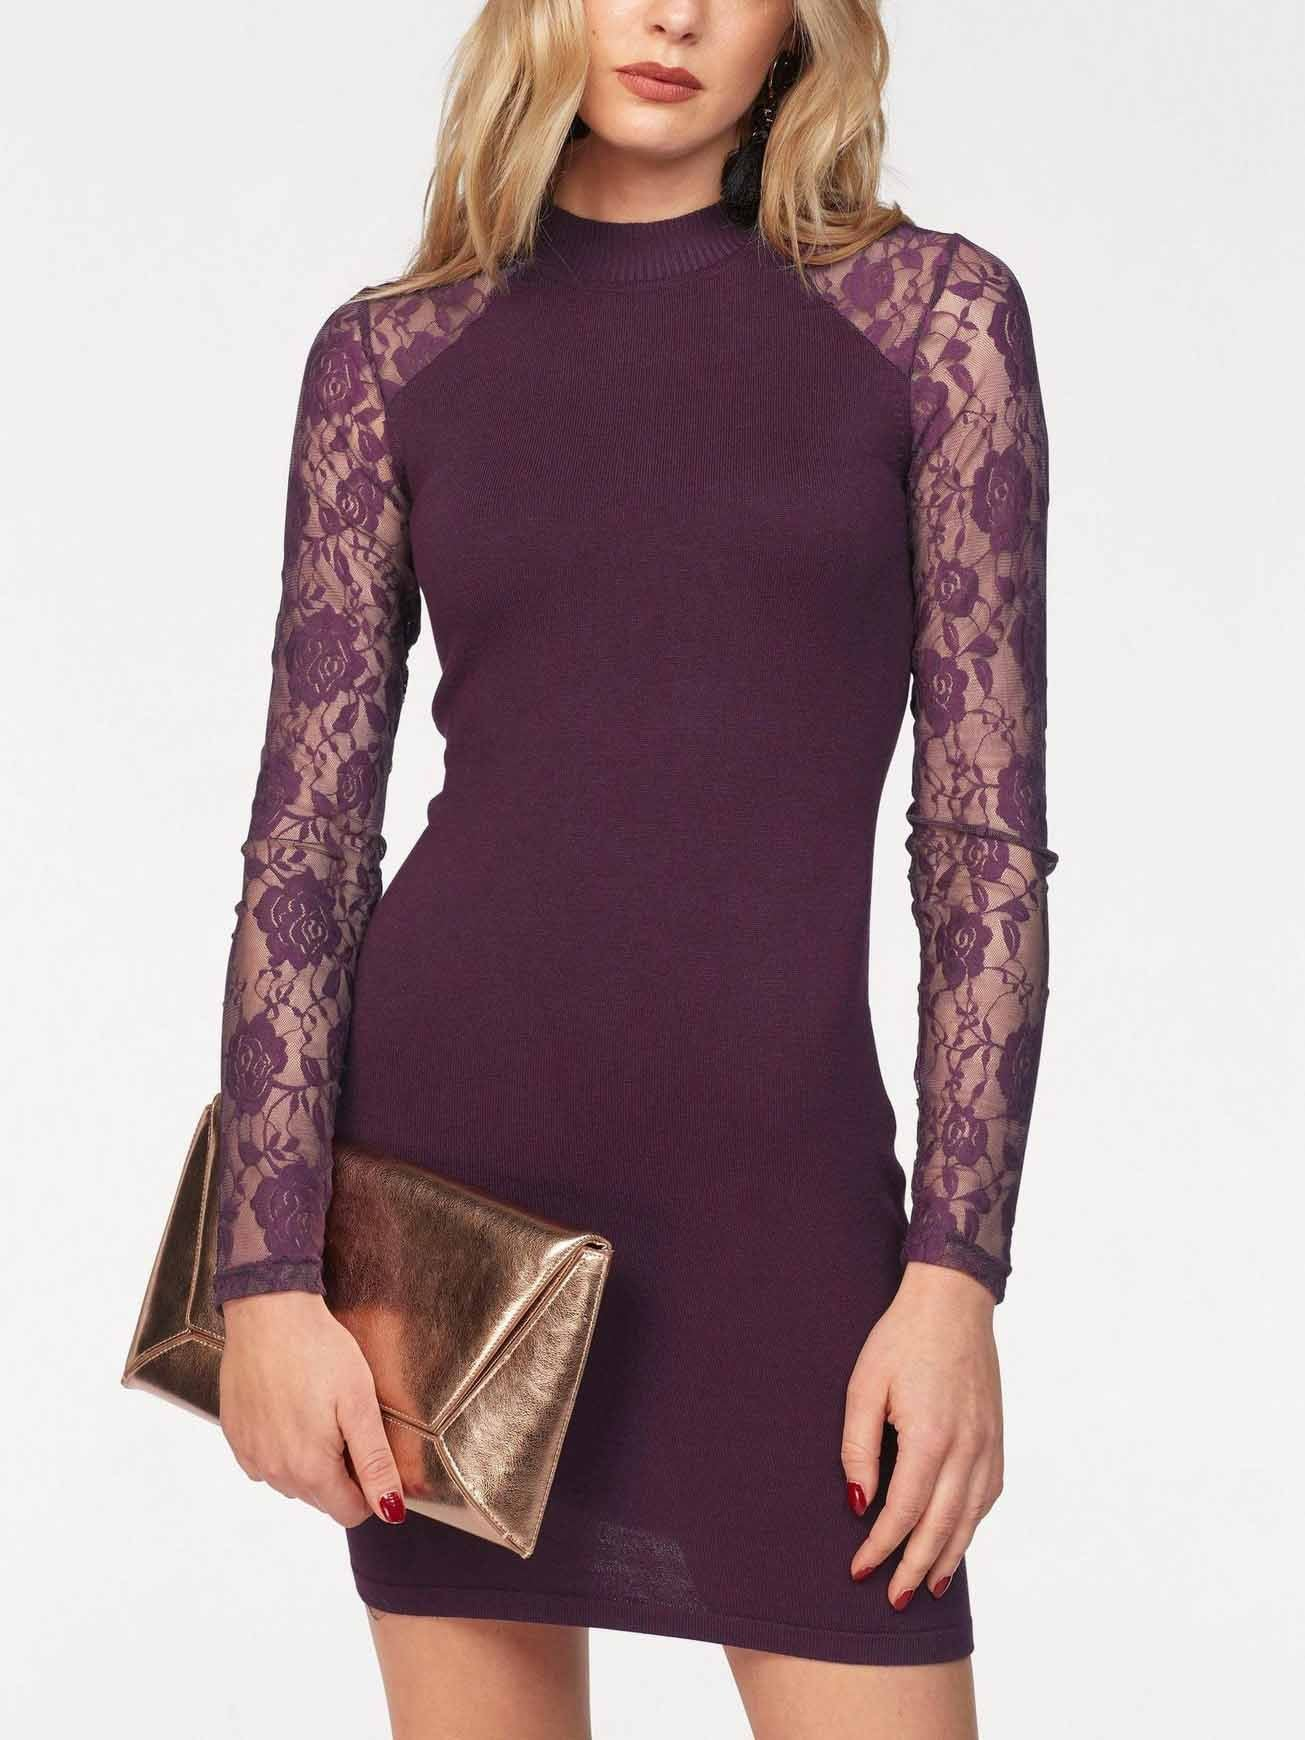 Solid Color Lace Sexy Sweater Dress